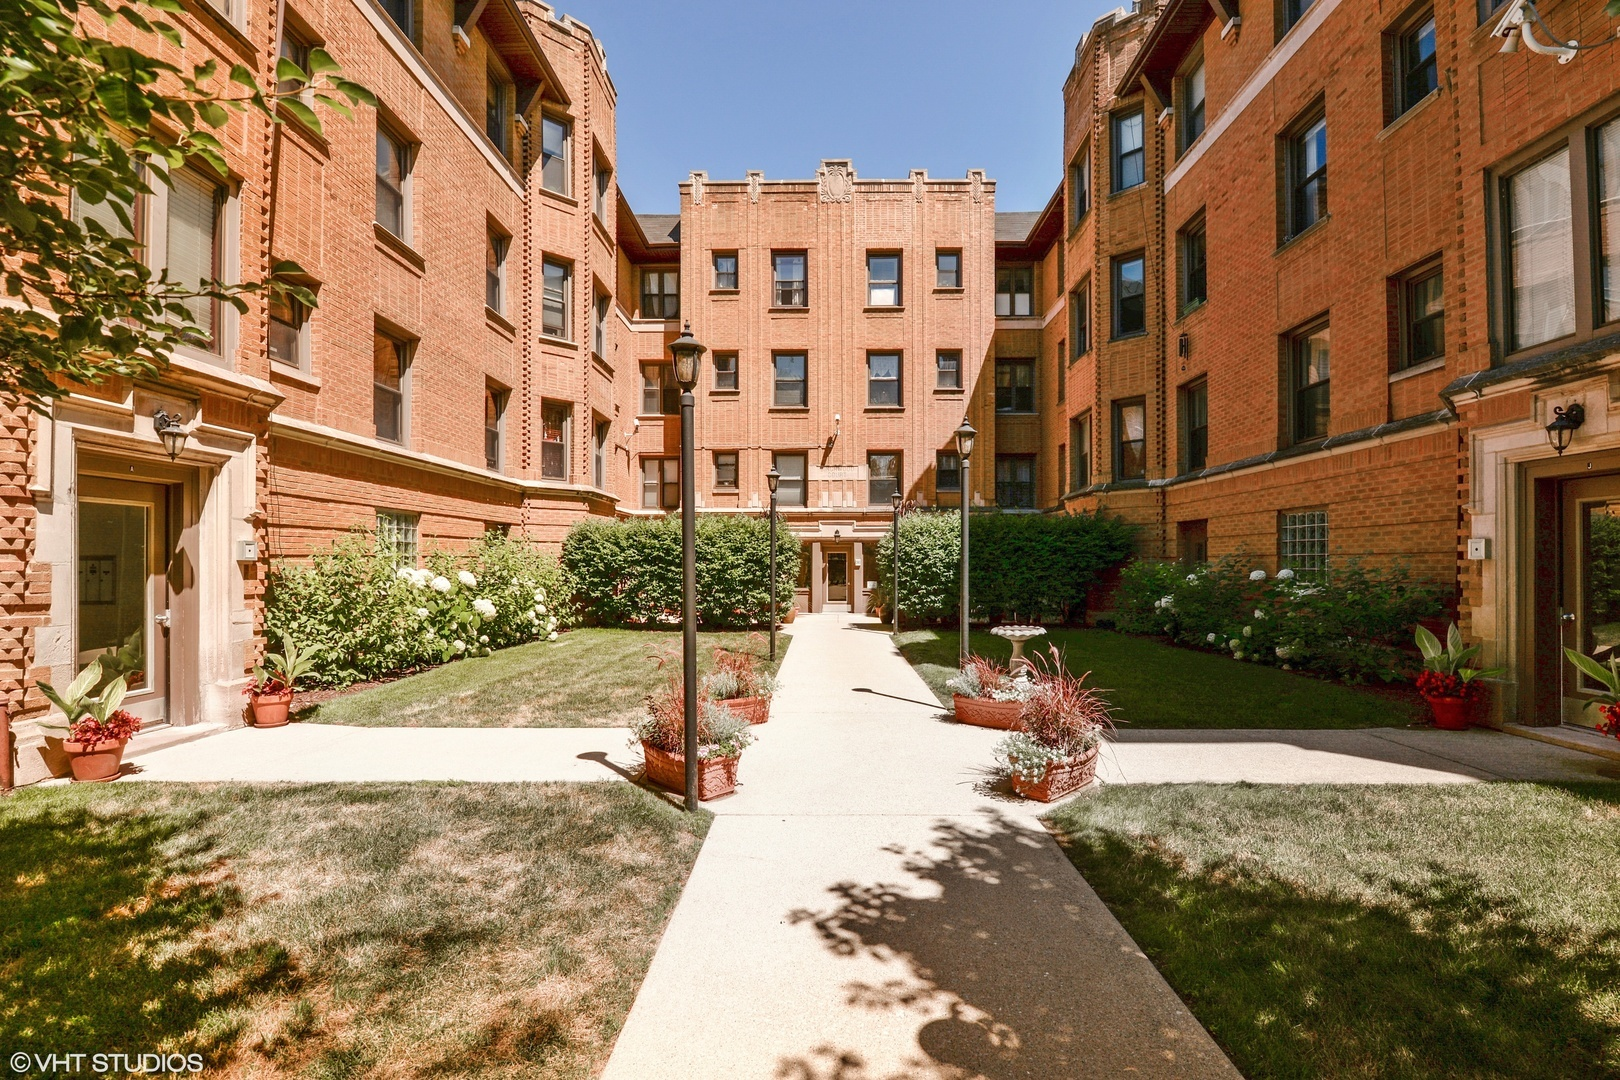 1 bed/1 bath Condo/Townhouse in Chicago for $129,000